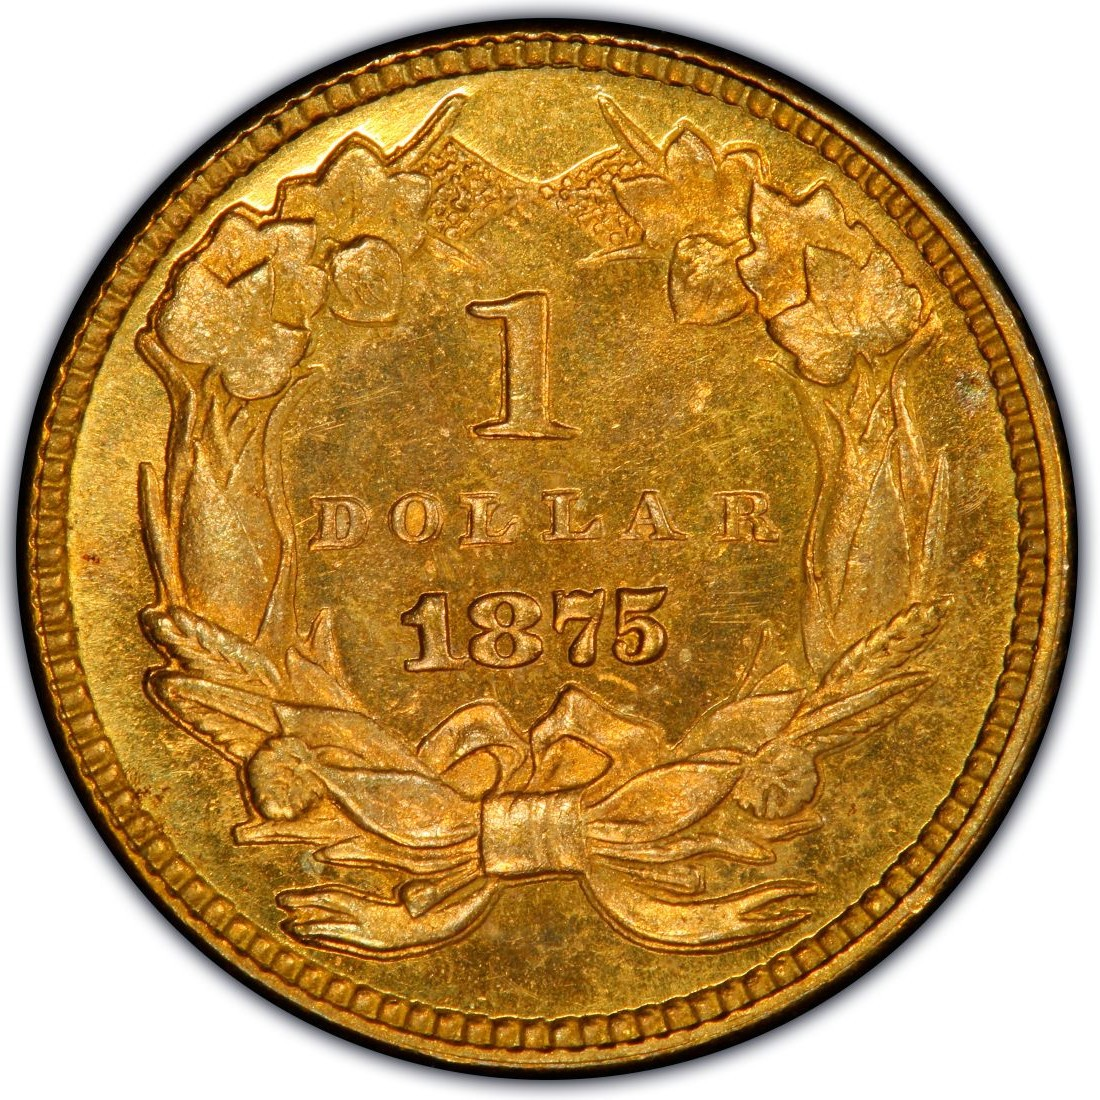 1875 Large Head Indian Princess Gold Dollar Values And